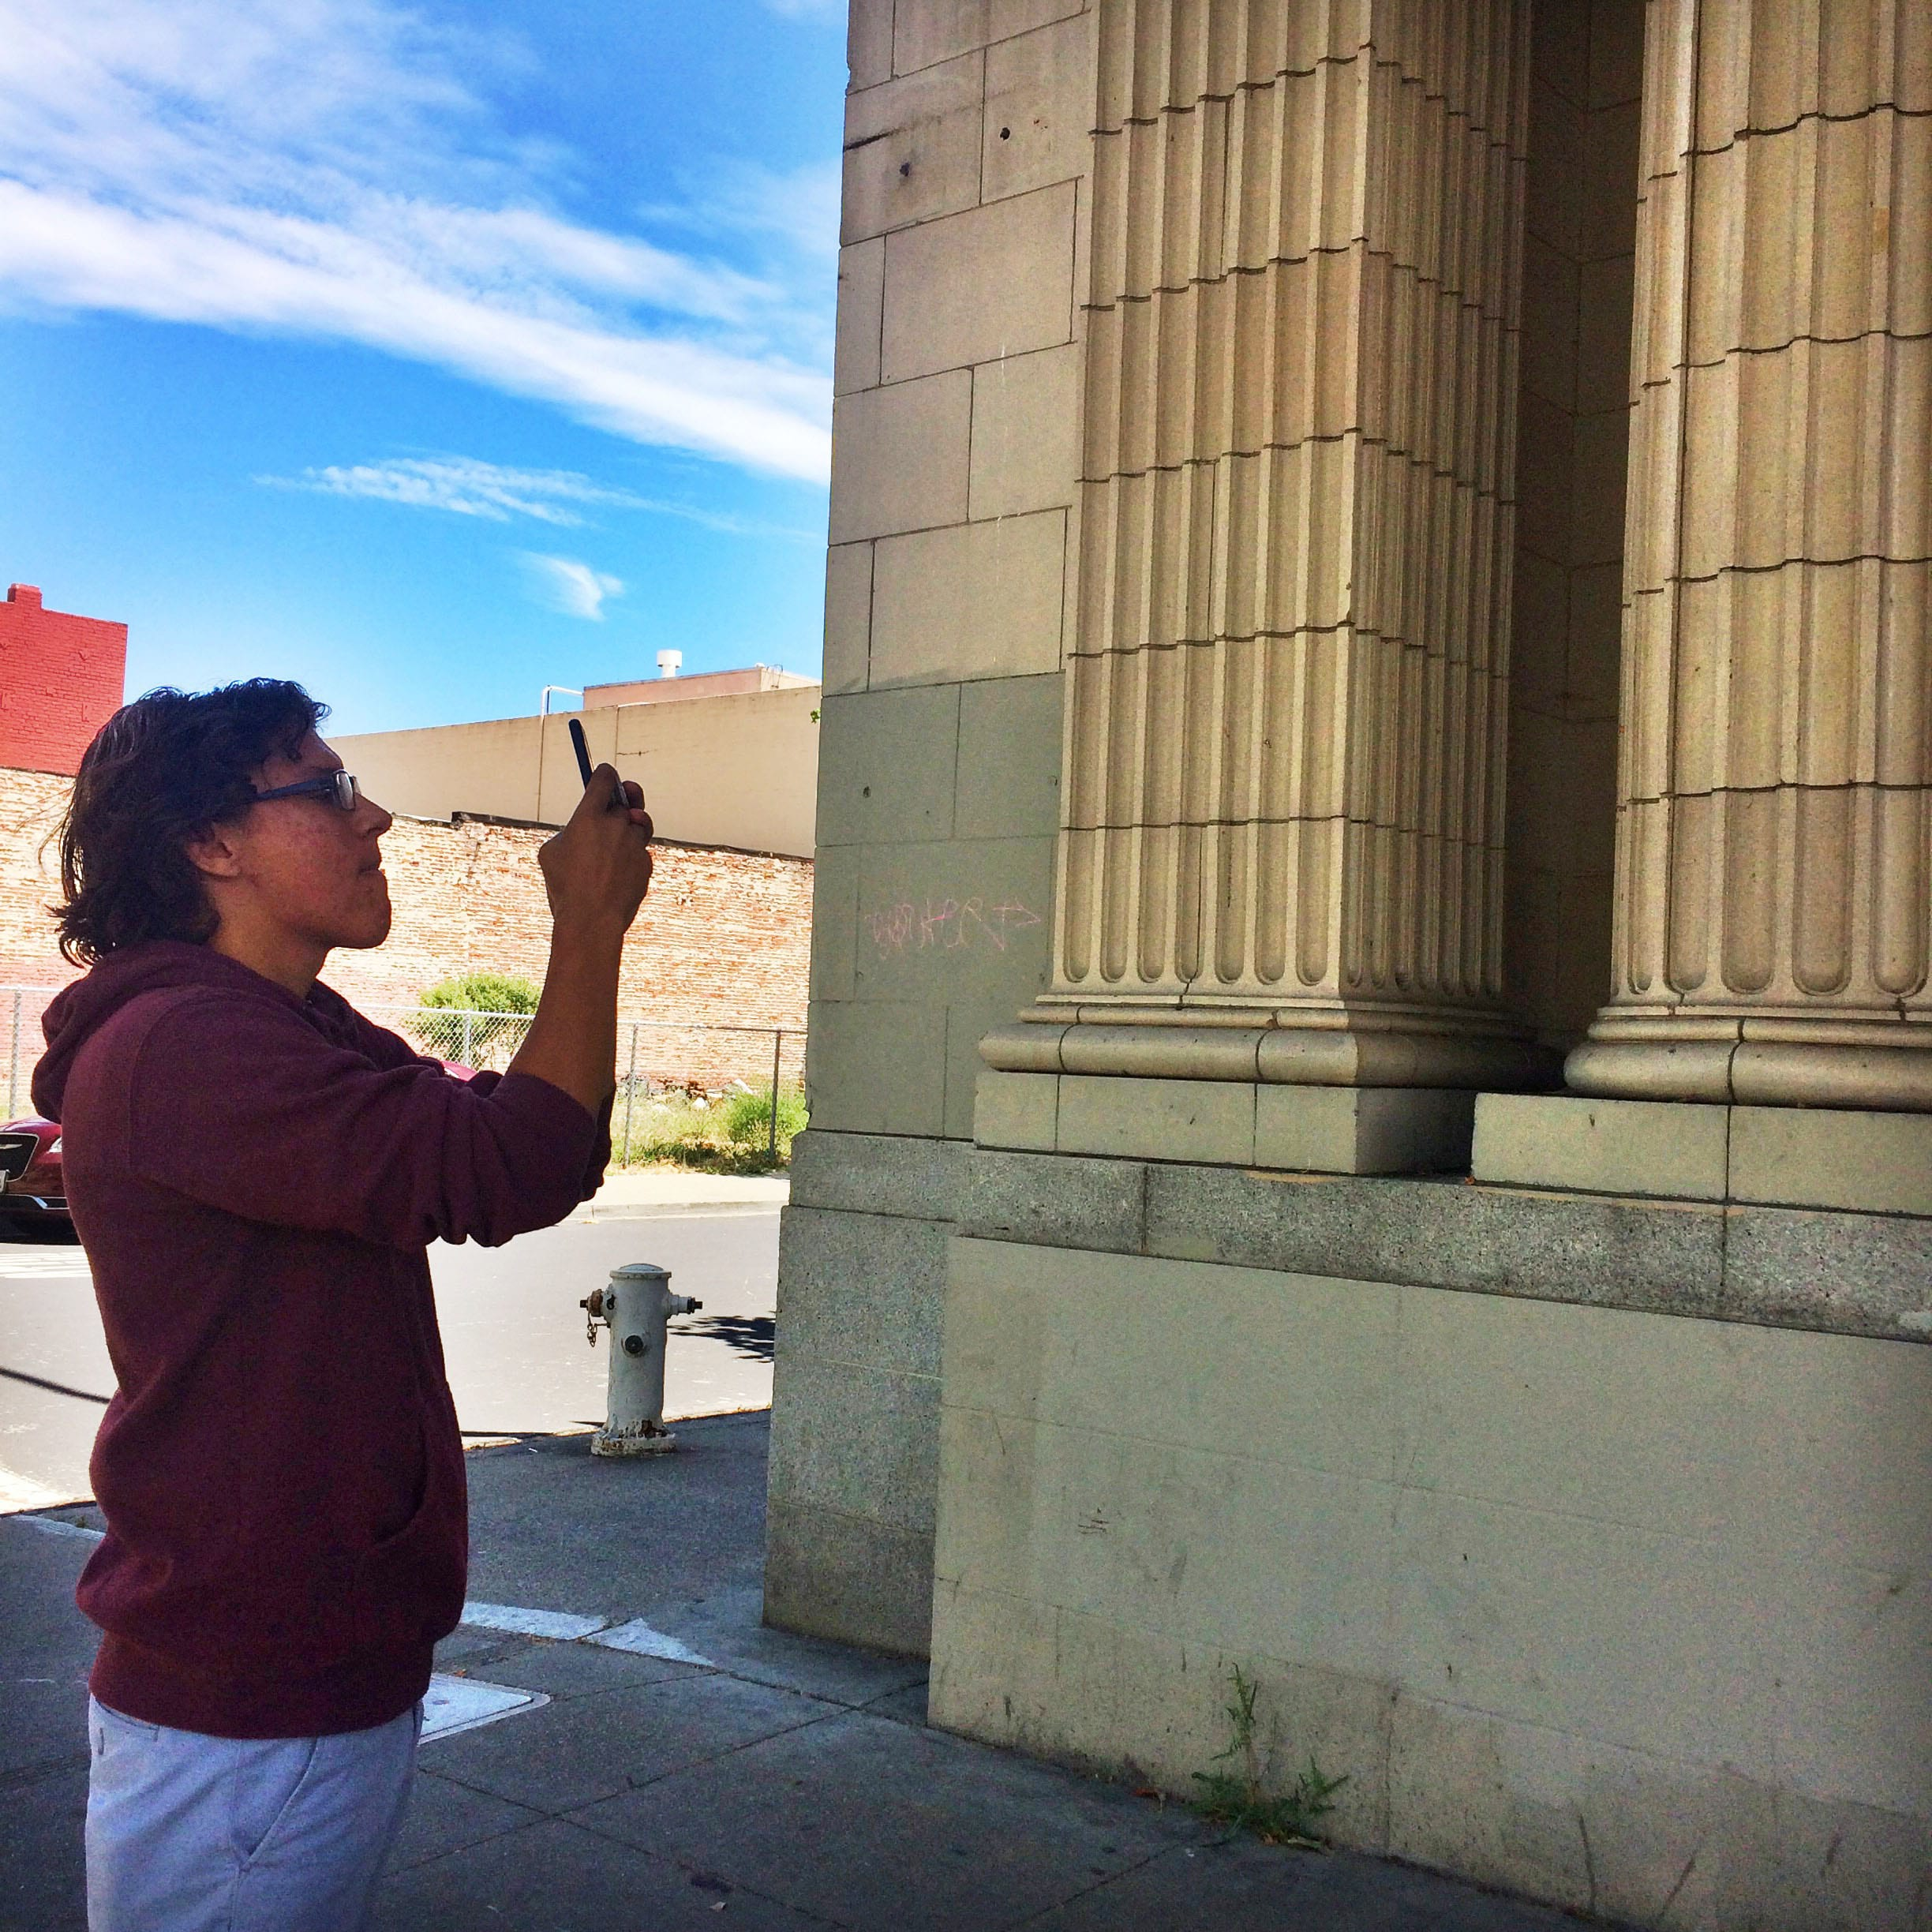 Julio photographing the historic Mechanis Bank building while touring Downtown's public art